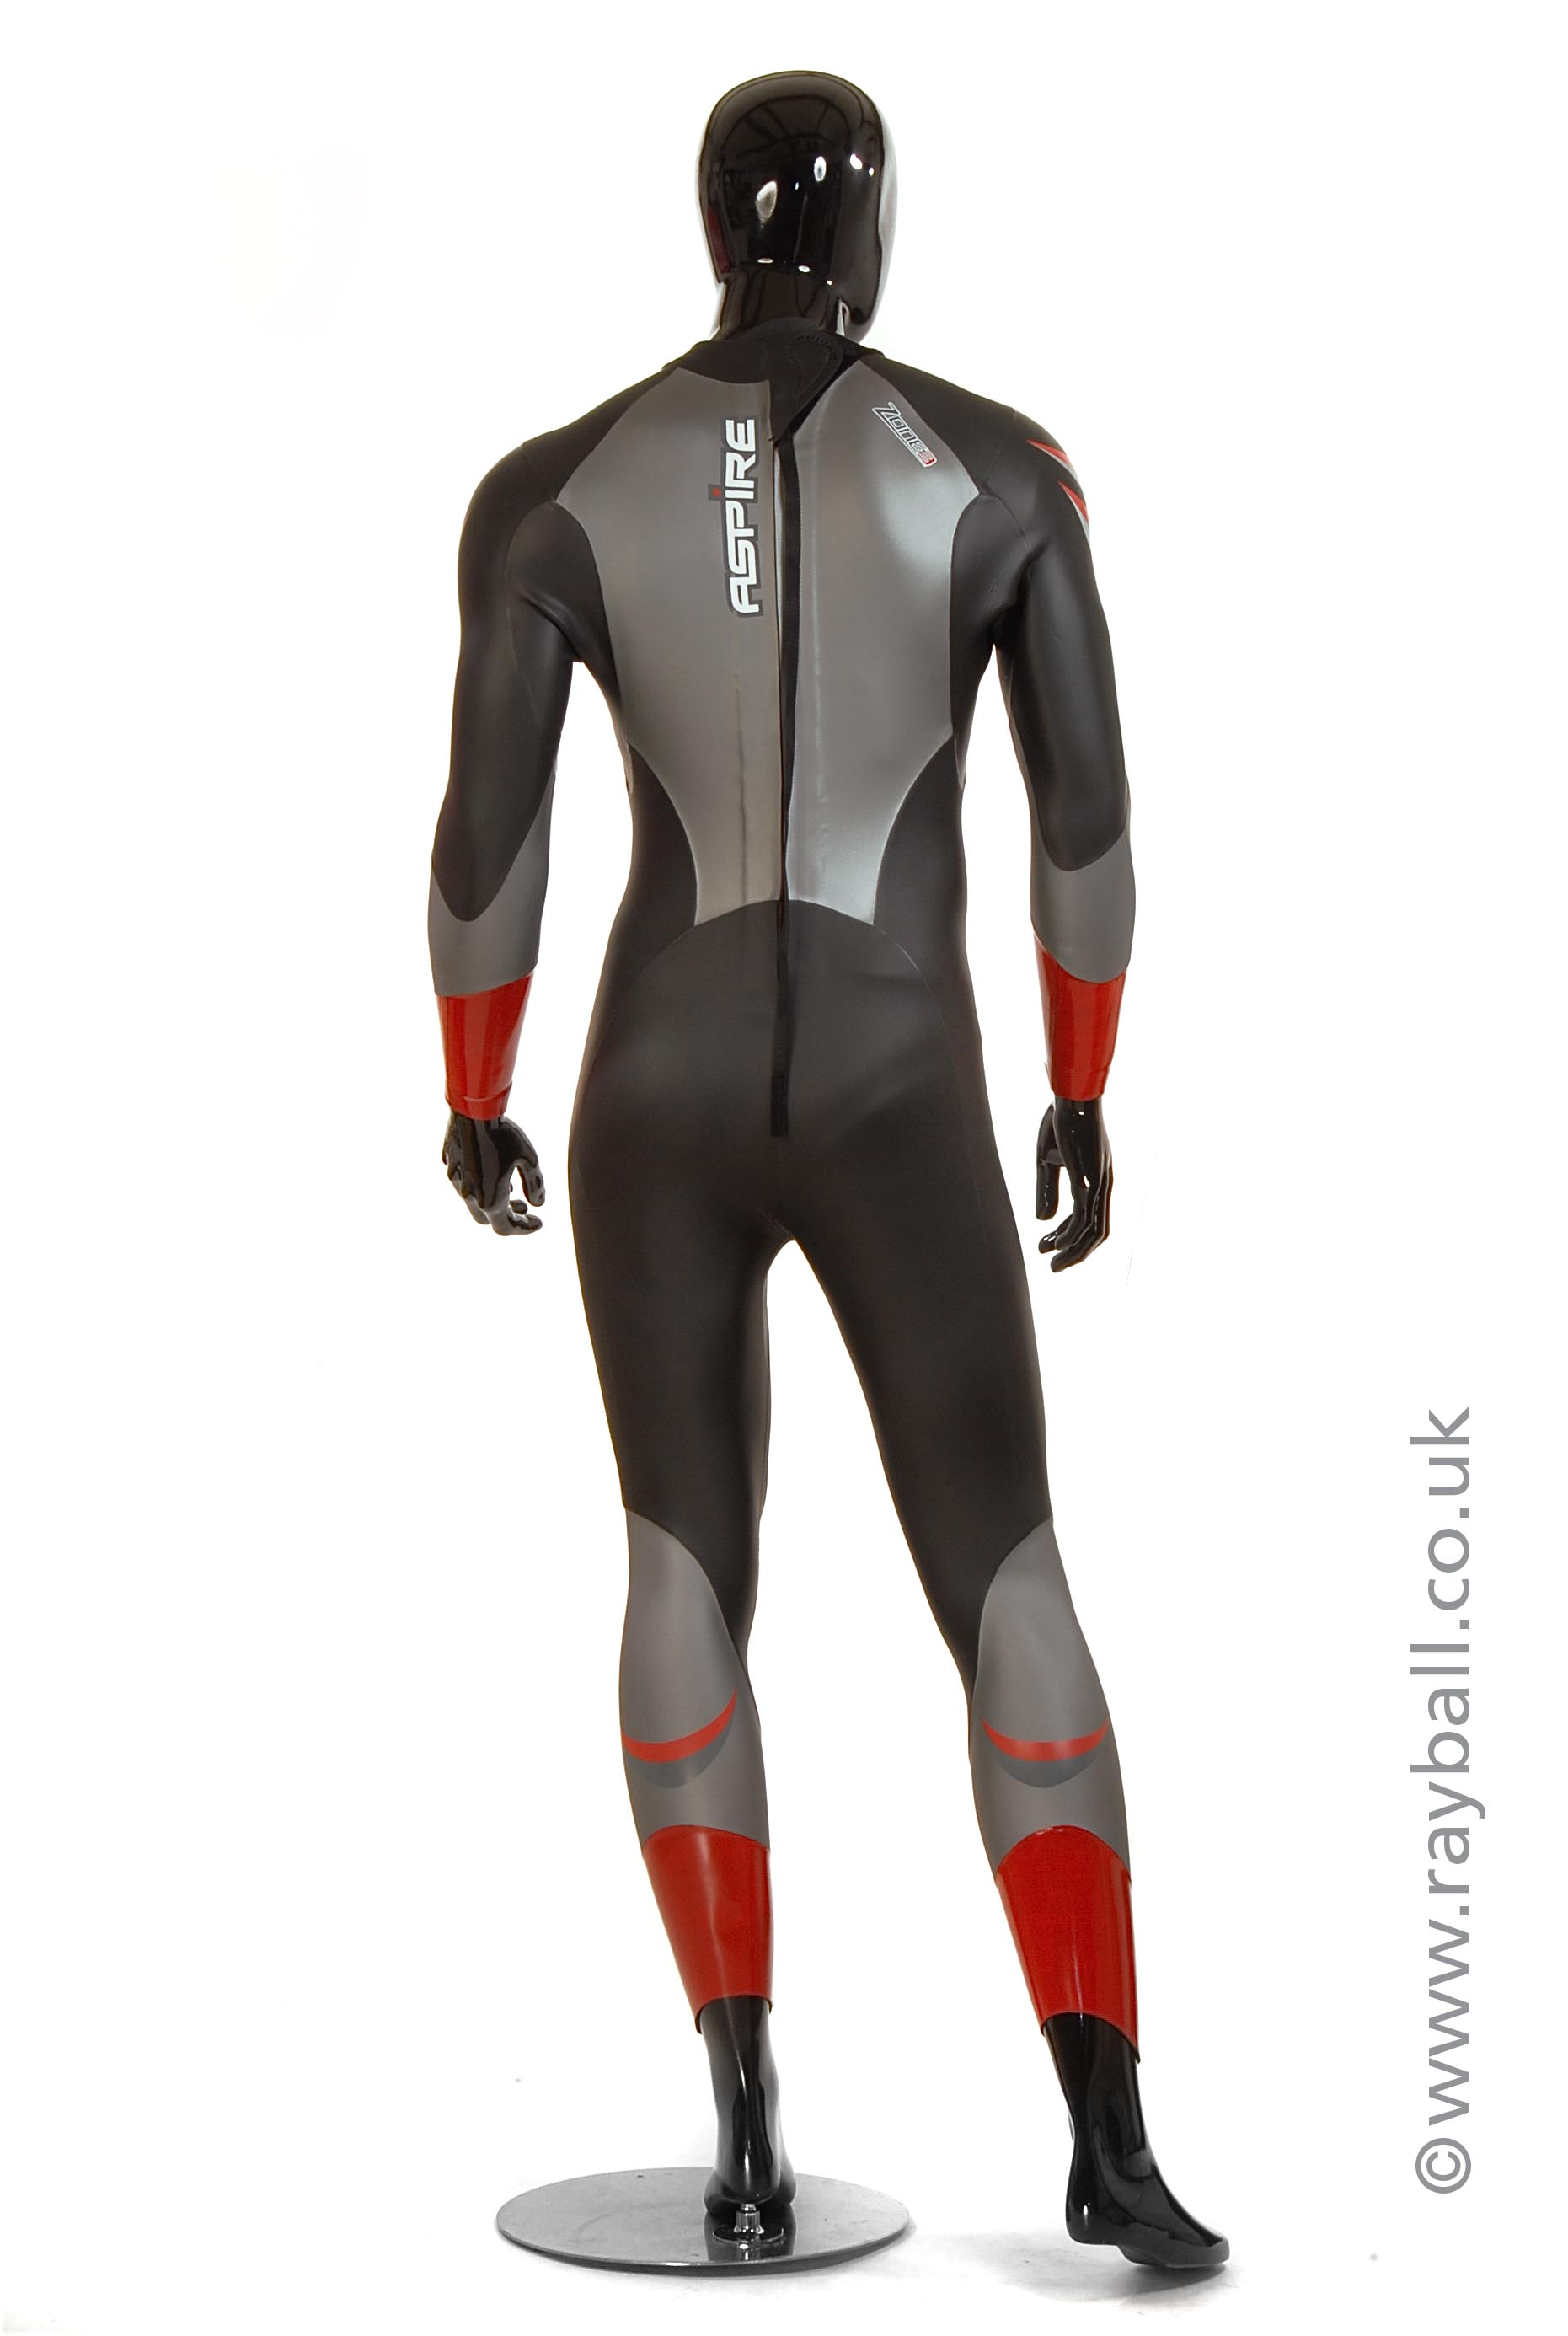 swim gear from Zone3 Guildford at Epsom Photography Studio Surrey.